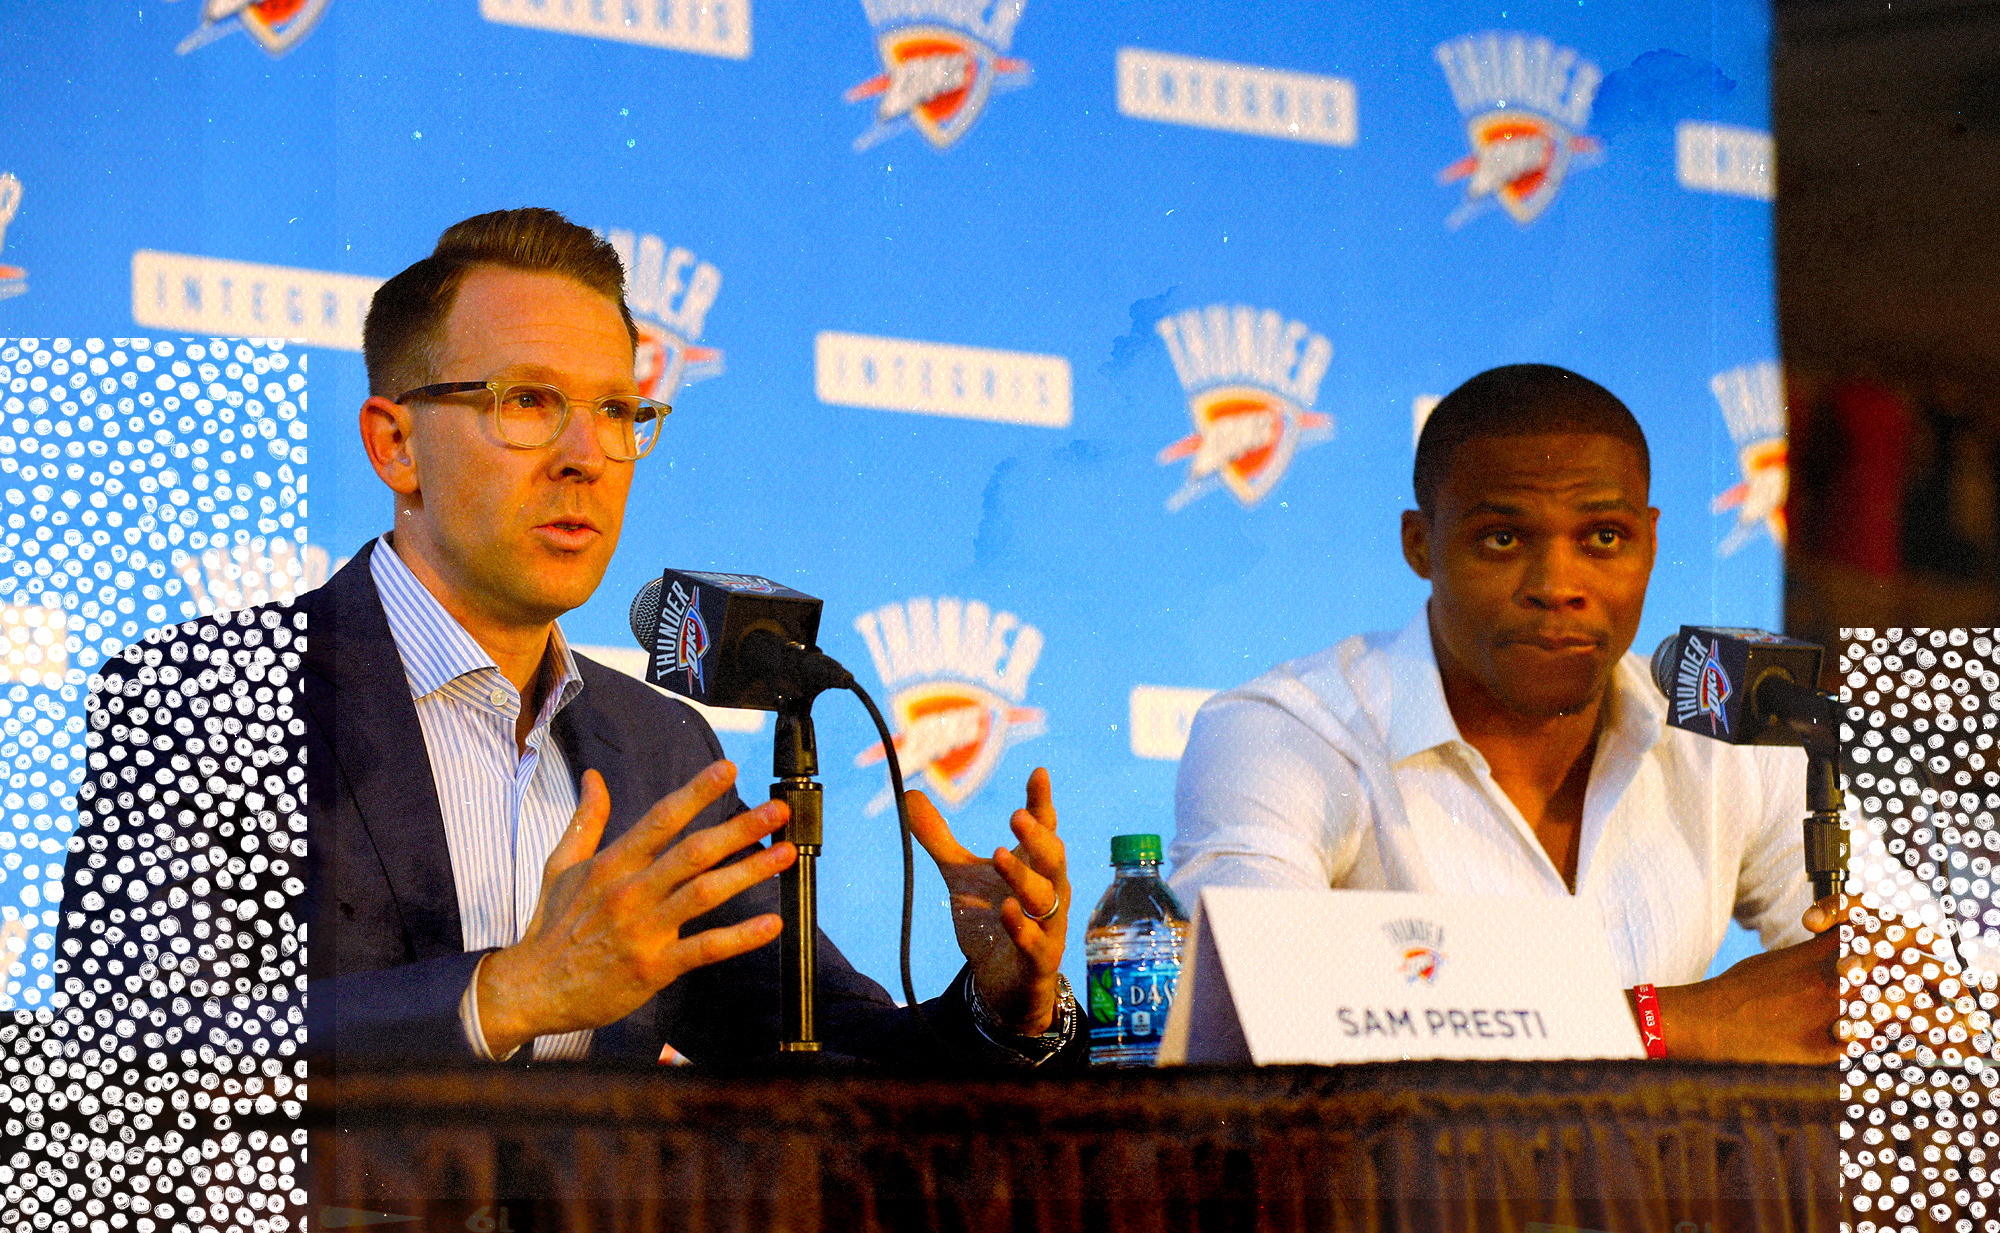 Sam Presti lost a potential Thunder dynasty. Now he can try again